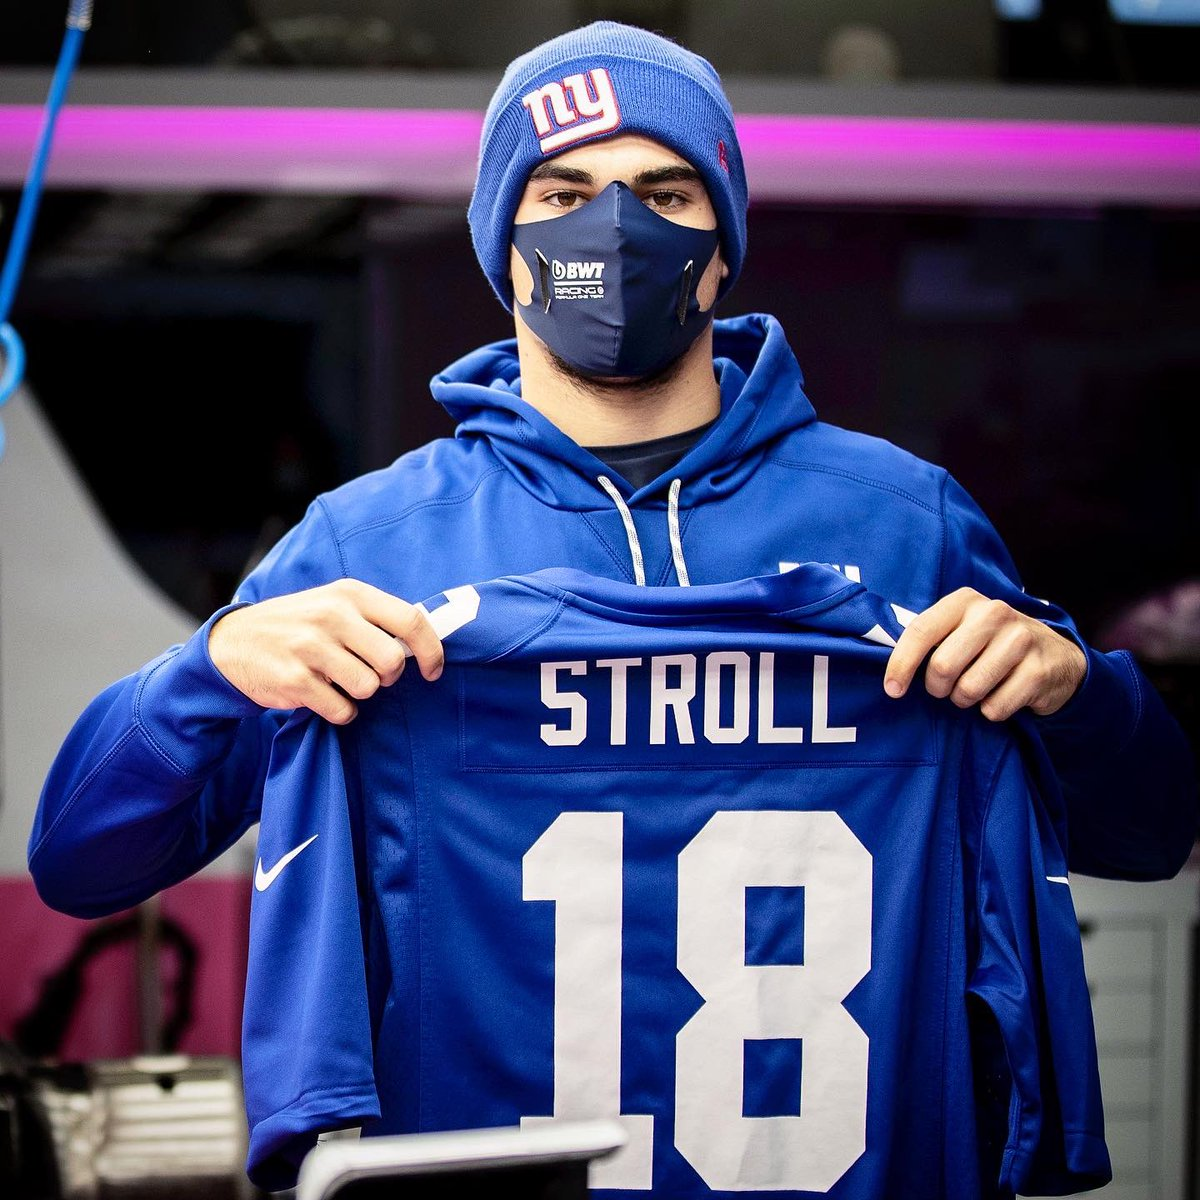 We know who @lance_stroll is rooting for on Sundays 🏈   Go Big Blue! #TogetherBlue @Giants @NFL https://t.co/UiKgF7e0px